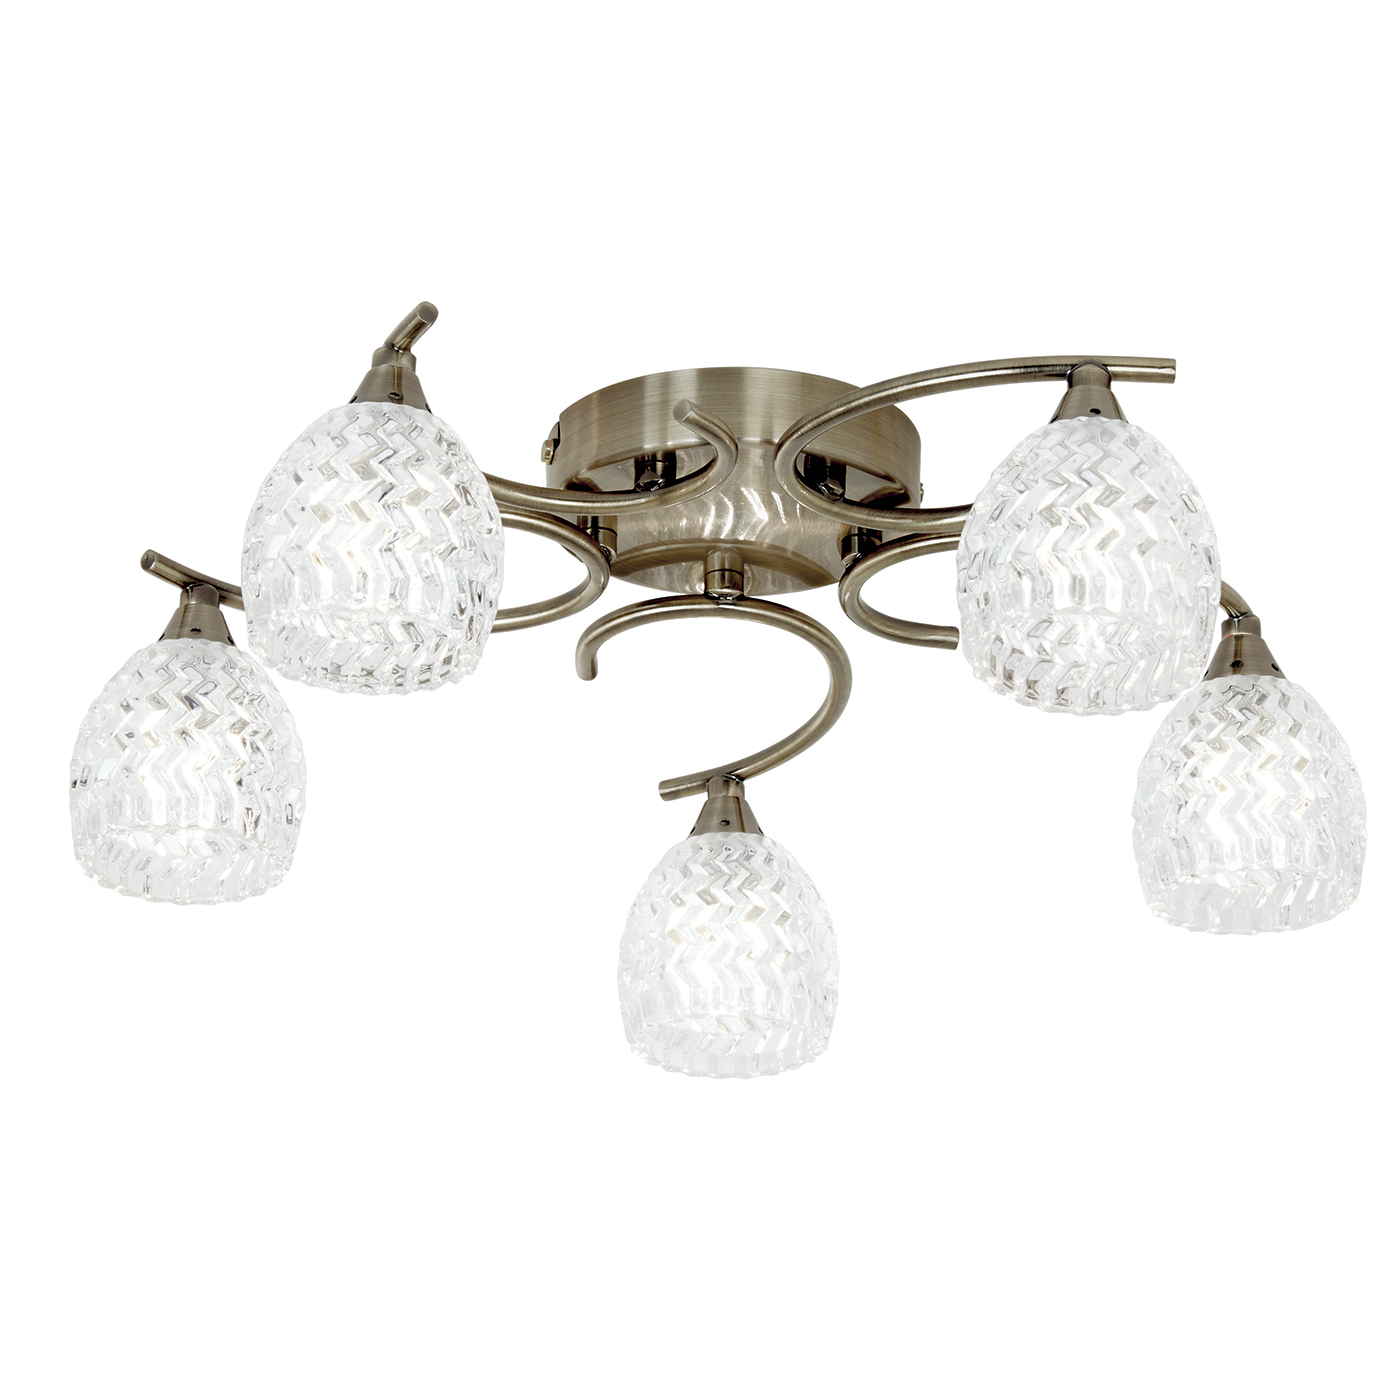 Endon Boyer ceiling light 5x 33W Antique brass effect & clear glass pattern